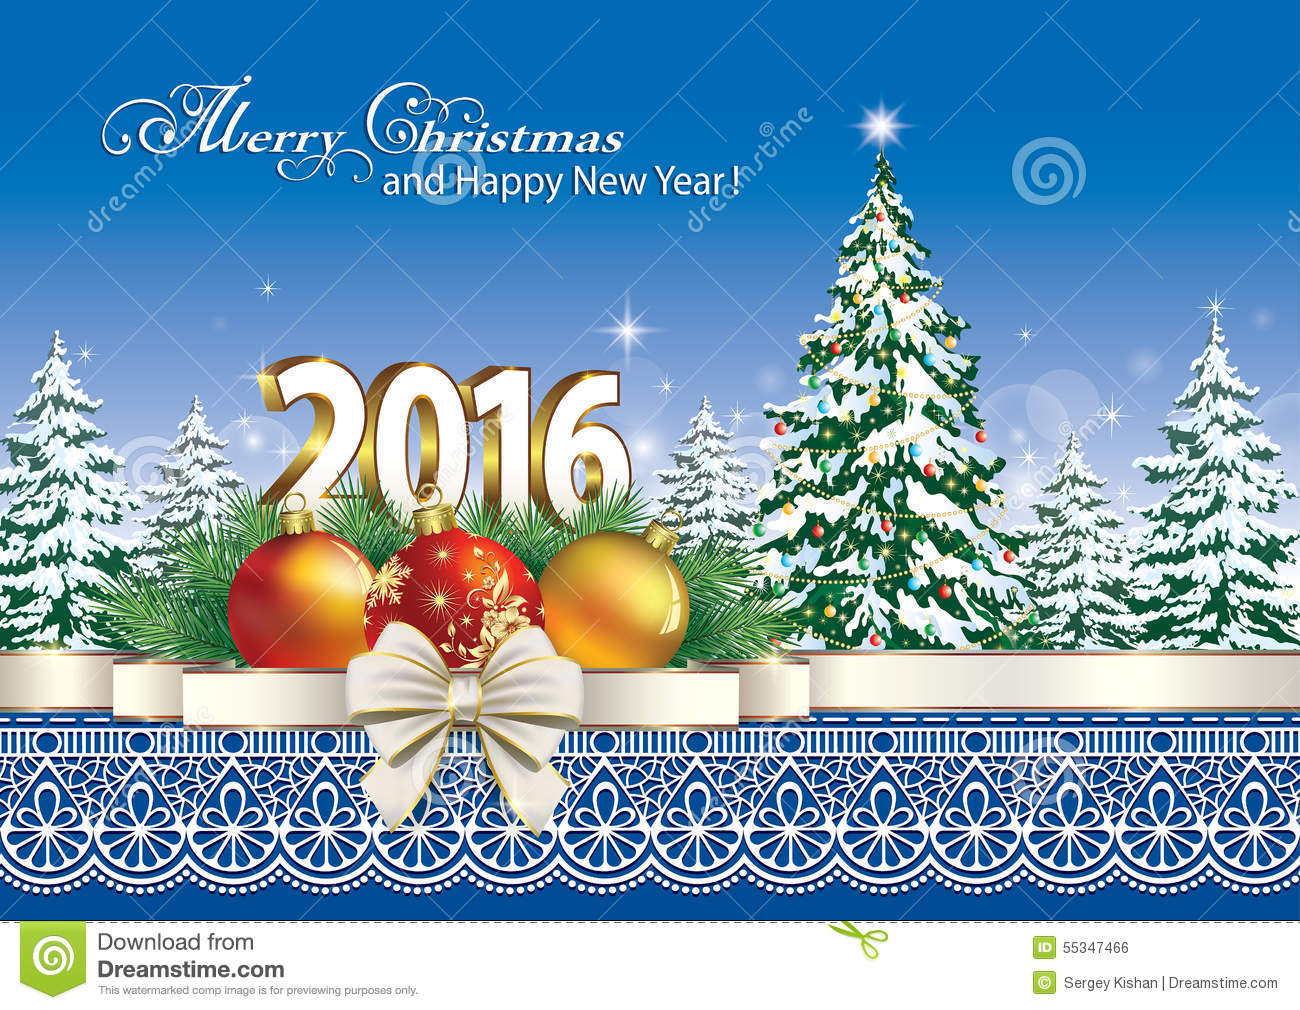 merry christmas and happy new year 2016 stock vector